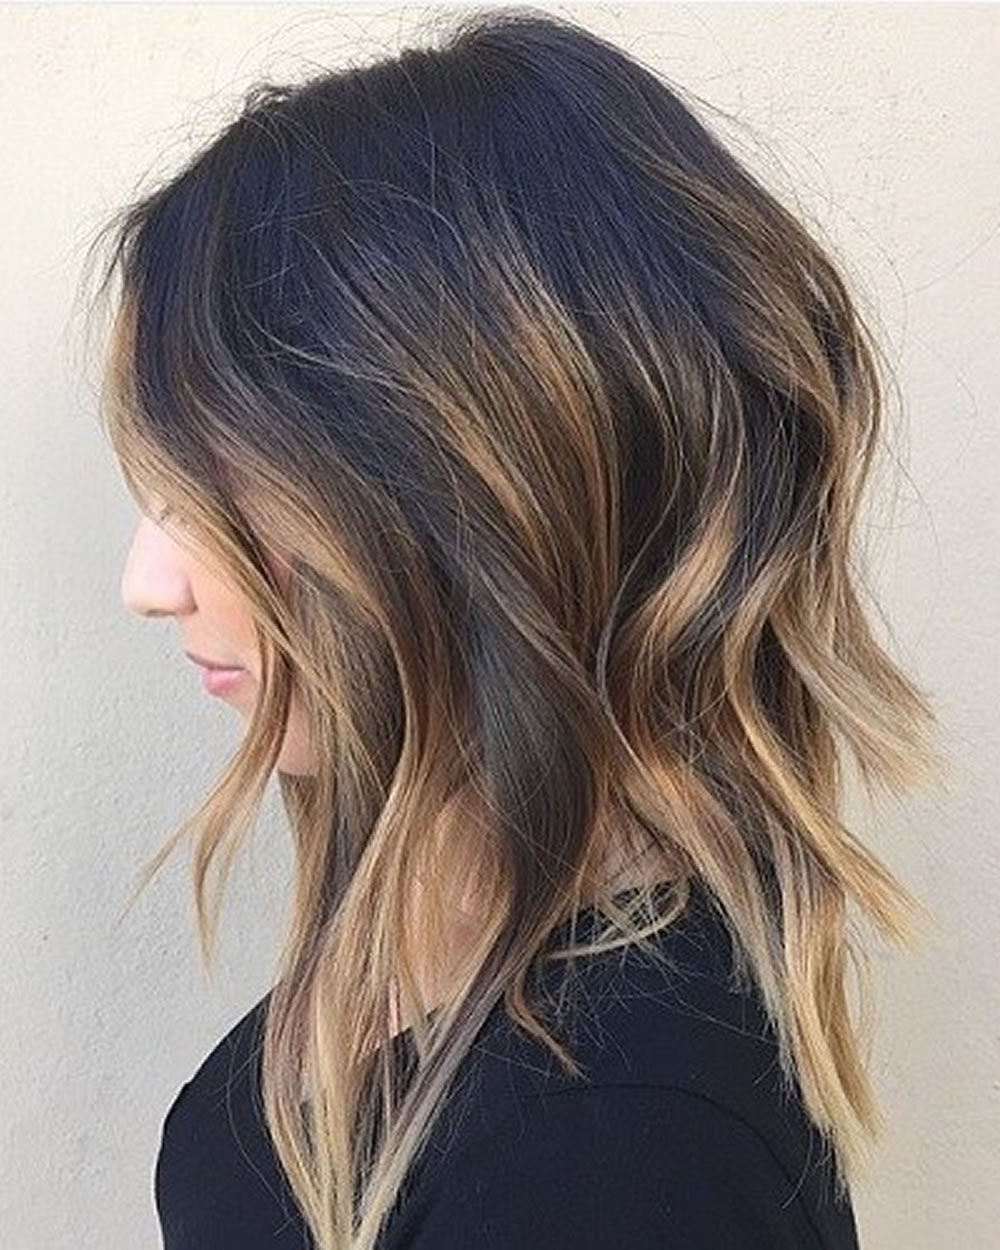 Asymmetrical Short Haircuts With Balayage Highlights 2018 – 2019 Within Short Crop Hairstyles With Colorful Highlights (Gallery 16 of 20)